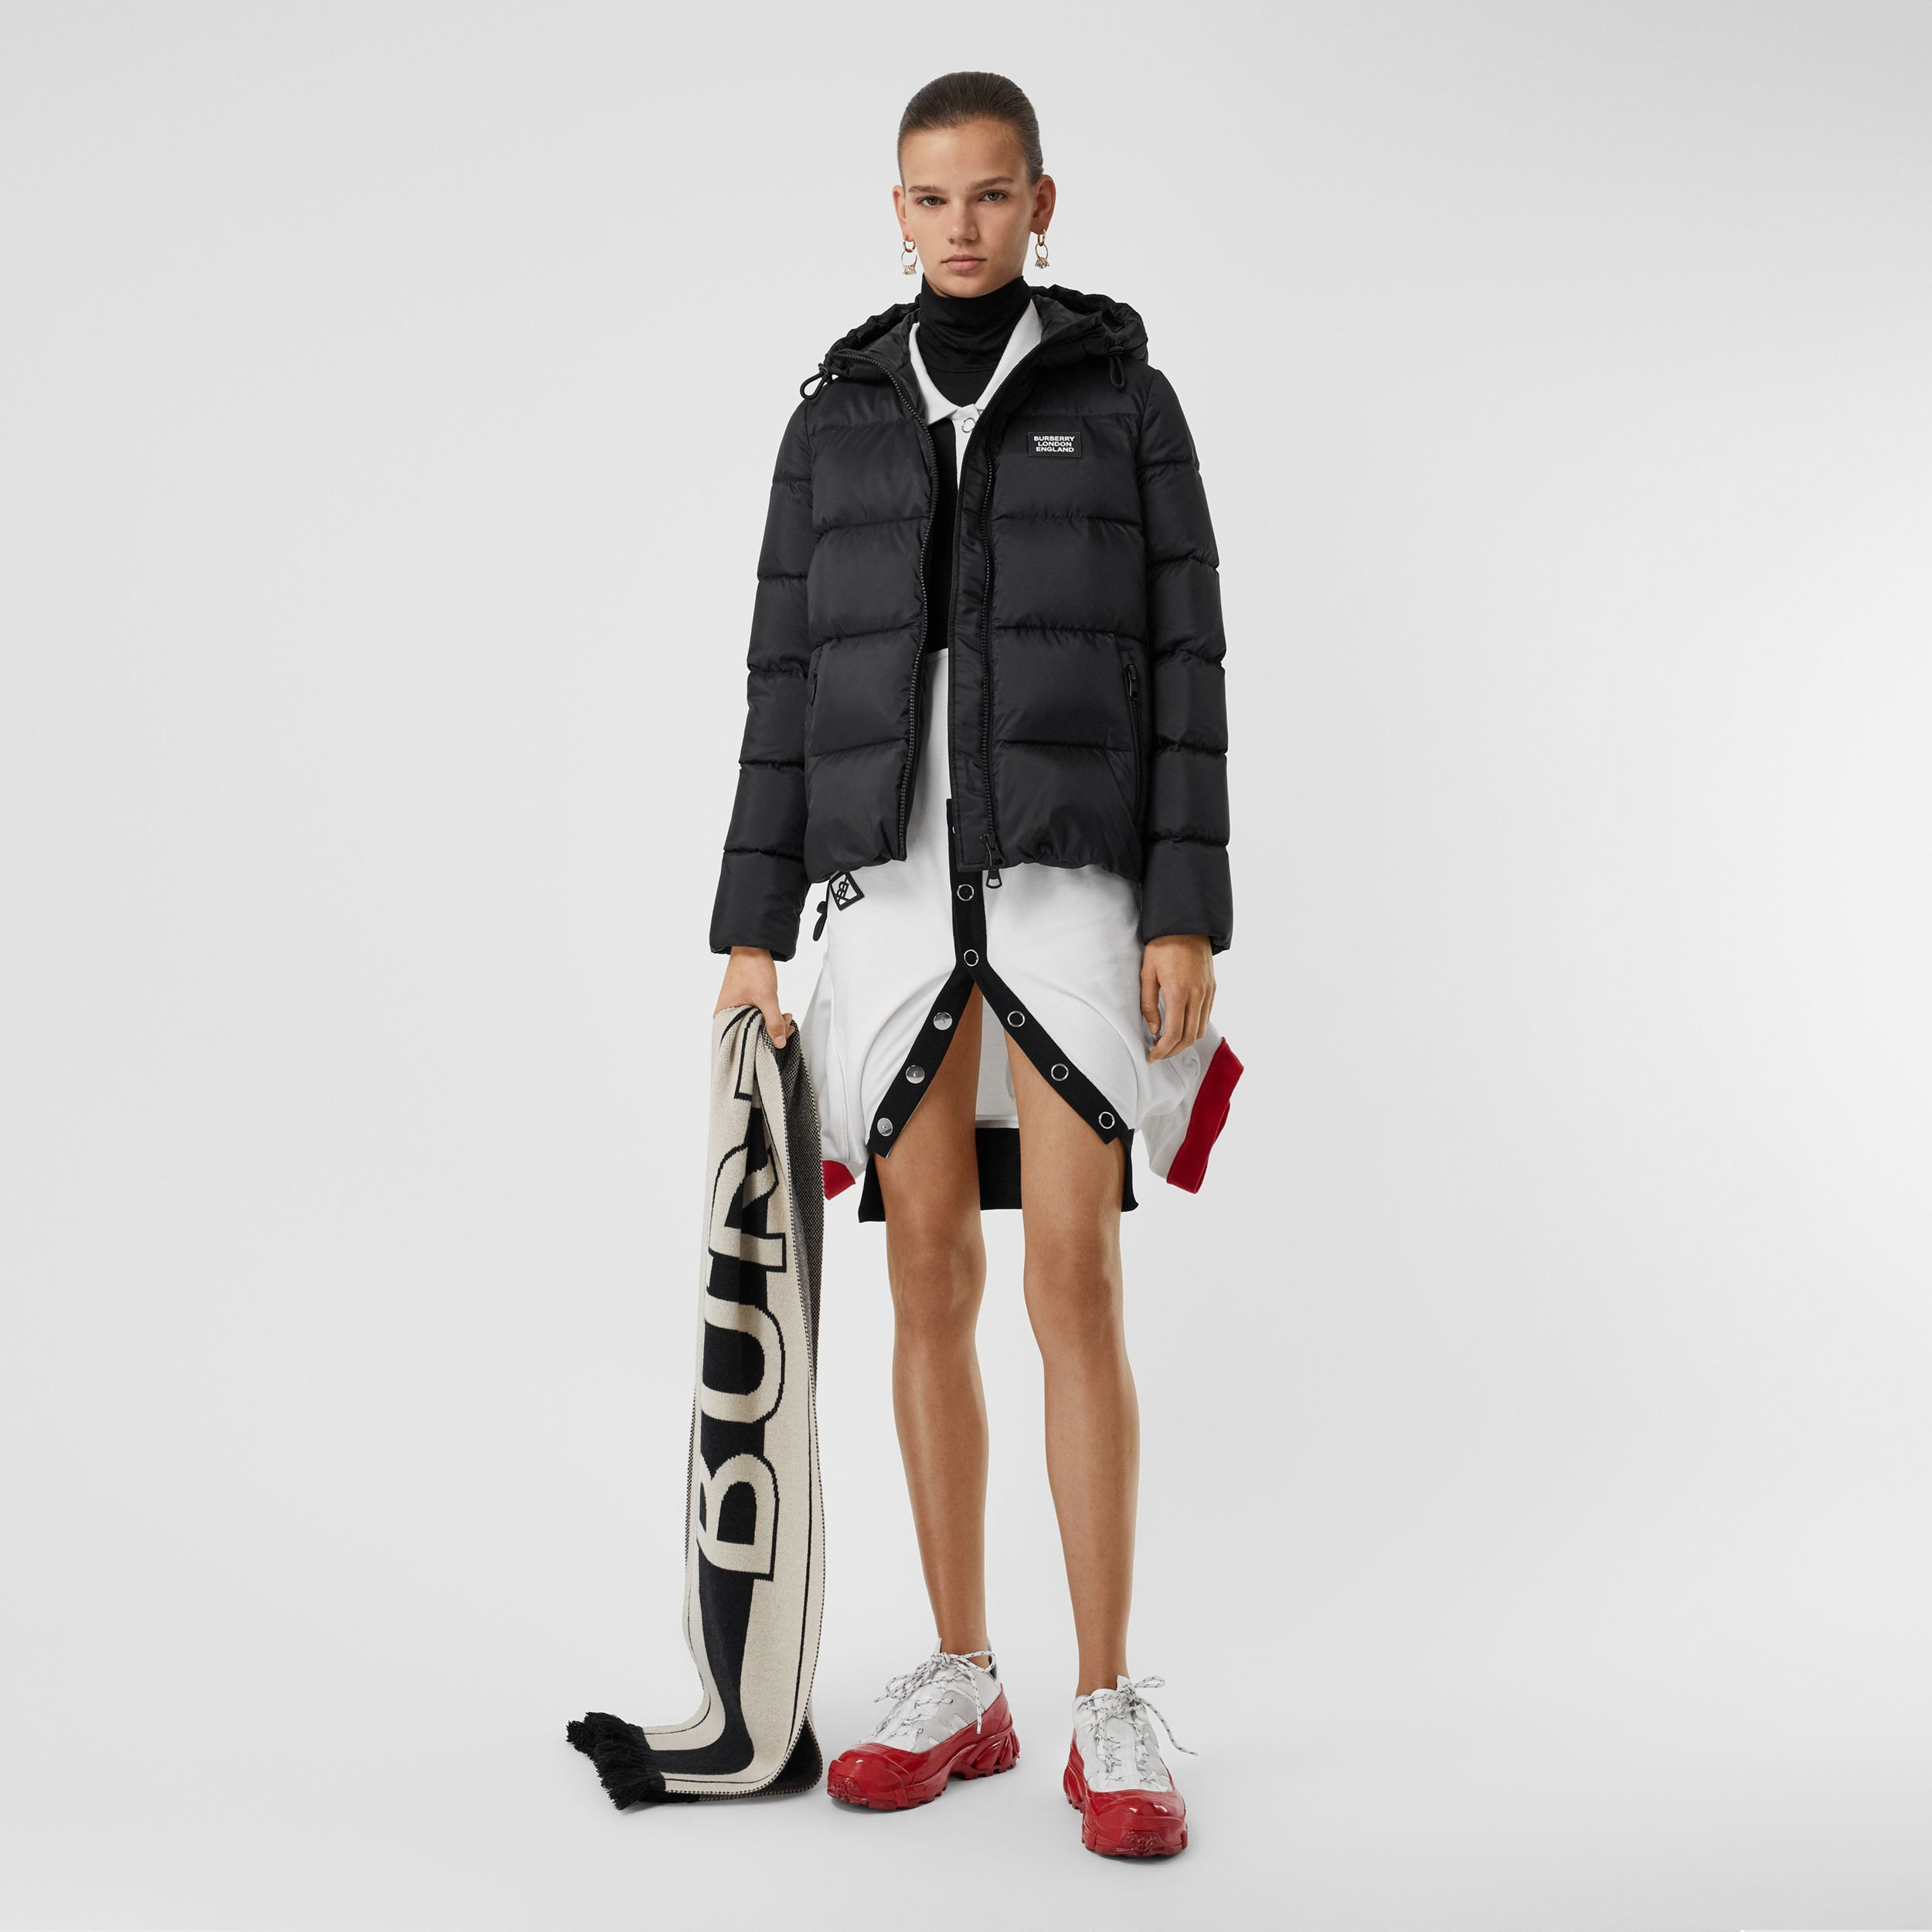 Monogram Stripe Print Hooded Puffer Jacket in Black - Women | Burberry - 1